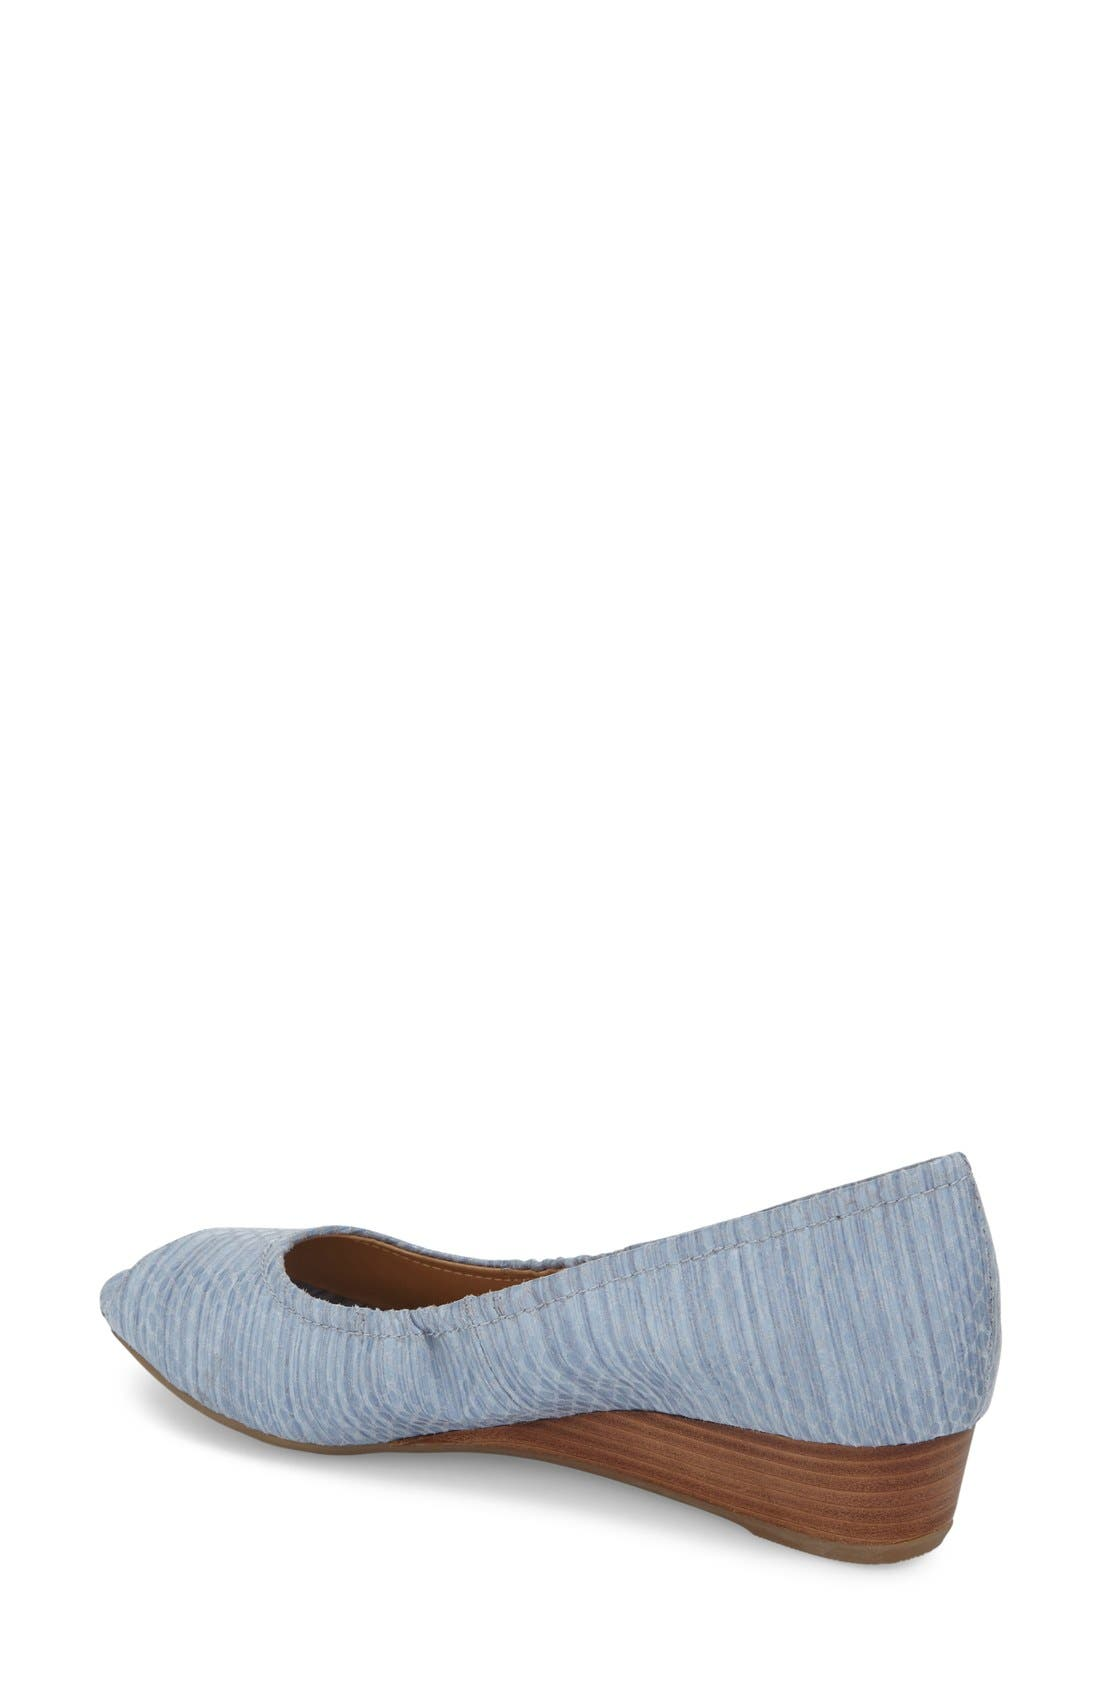 'Contrast' Peep Toe Wedge,                             Alternate thumbnail 8, color,